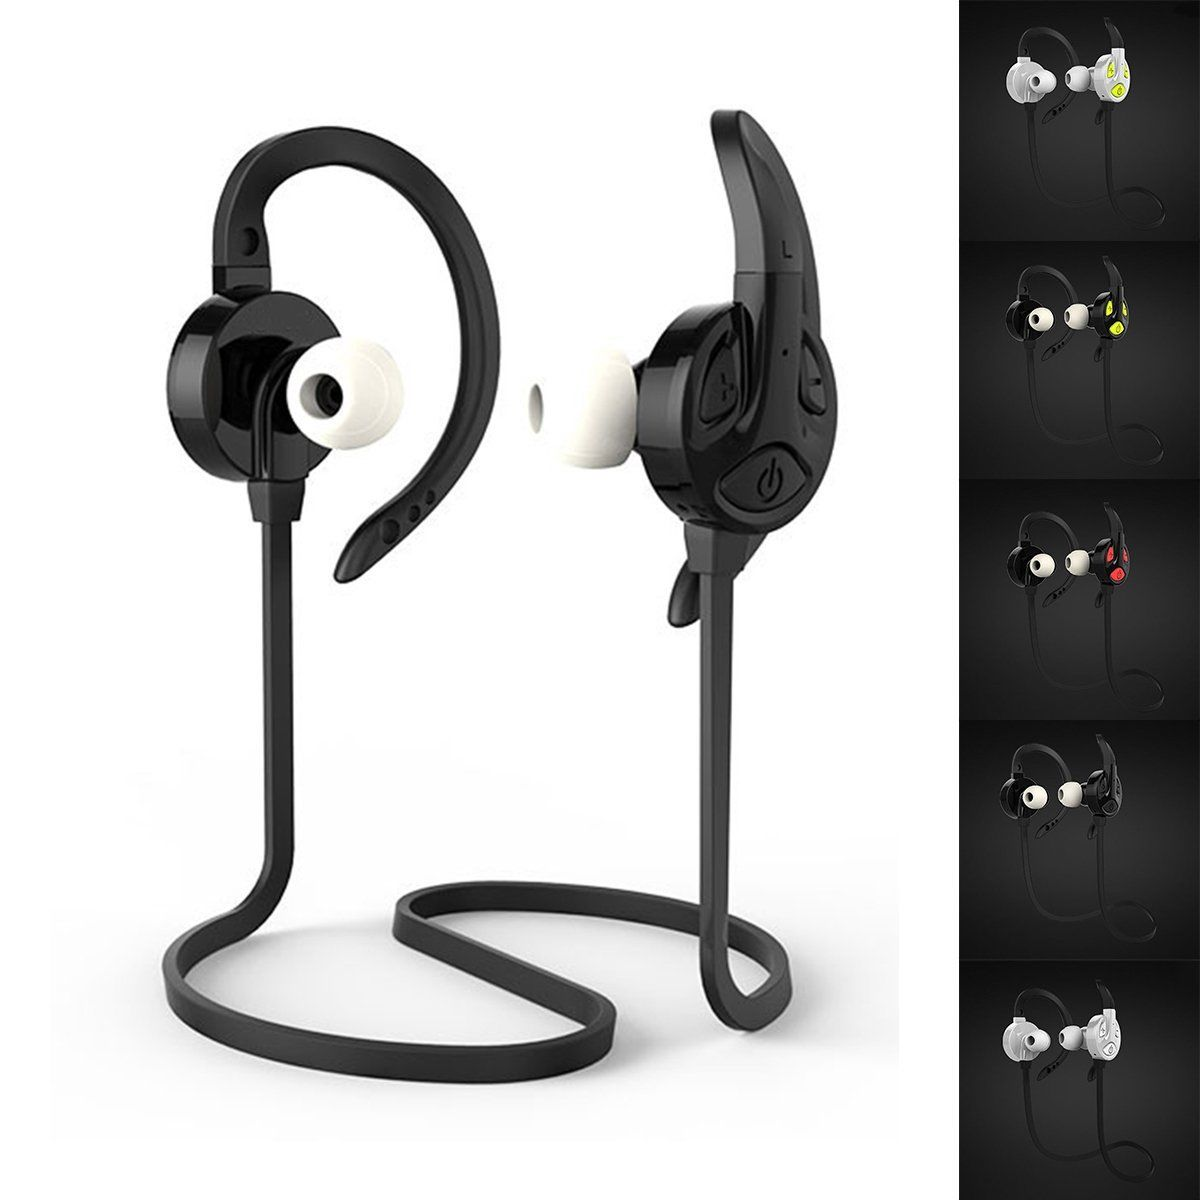 New Wireless Bluetooth 4.1 Headset SPORT Stereo Handsfree Music Headphones Universal For iPhone For Samsung Bluetooth Earphone<br><br>Aliexpress